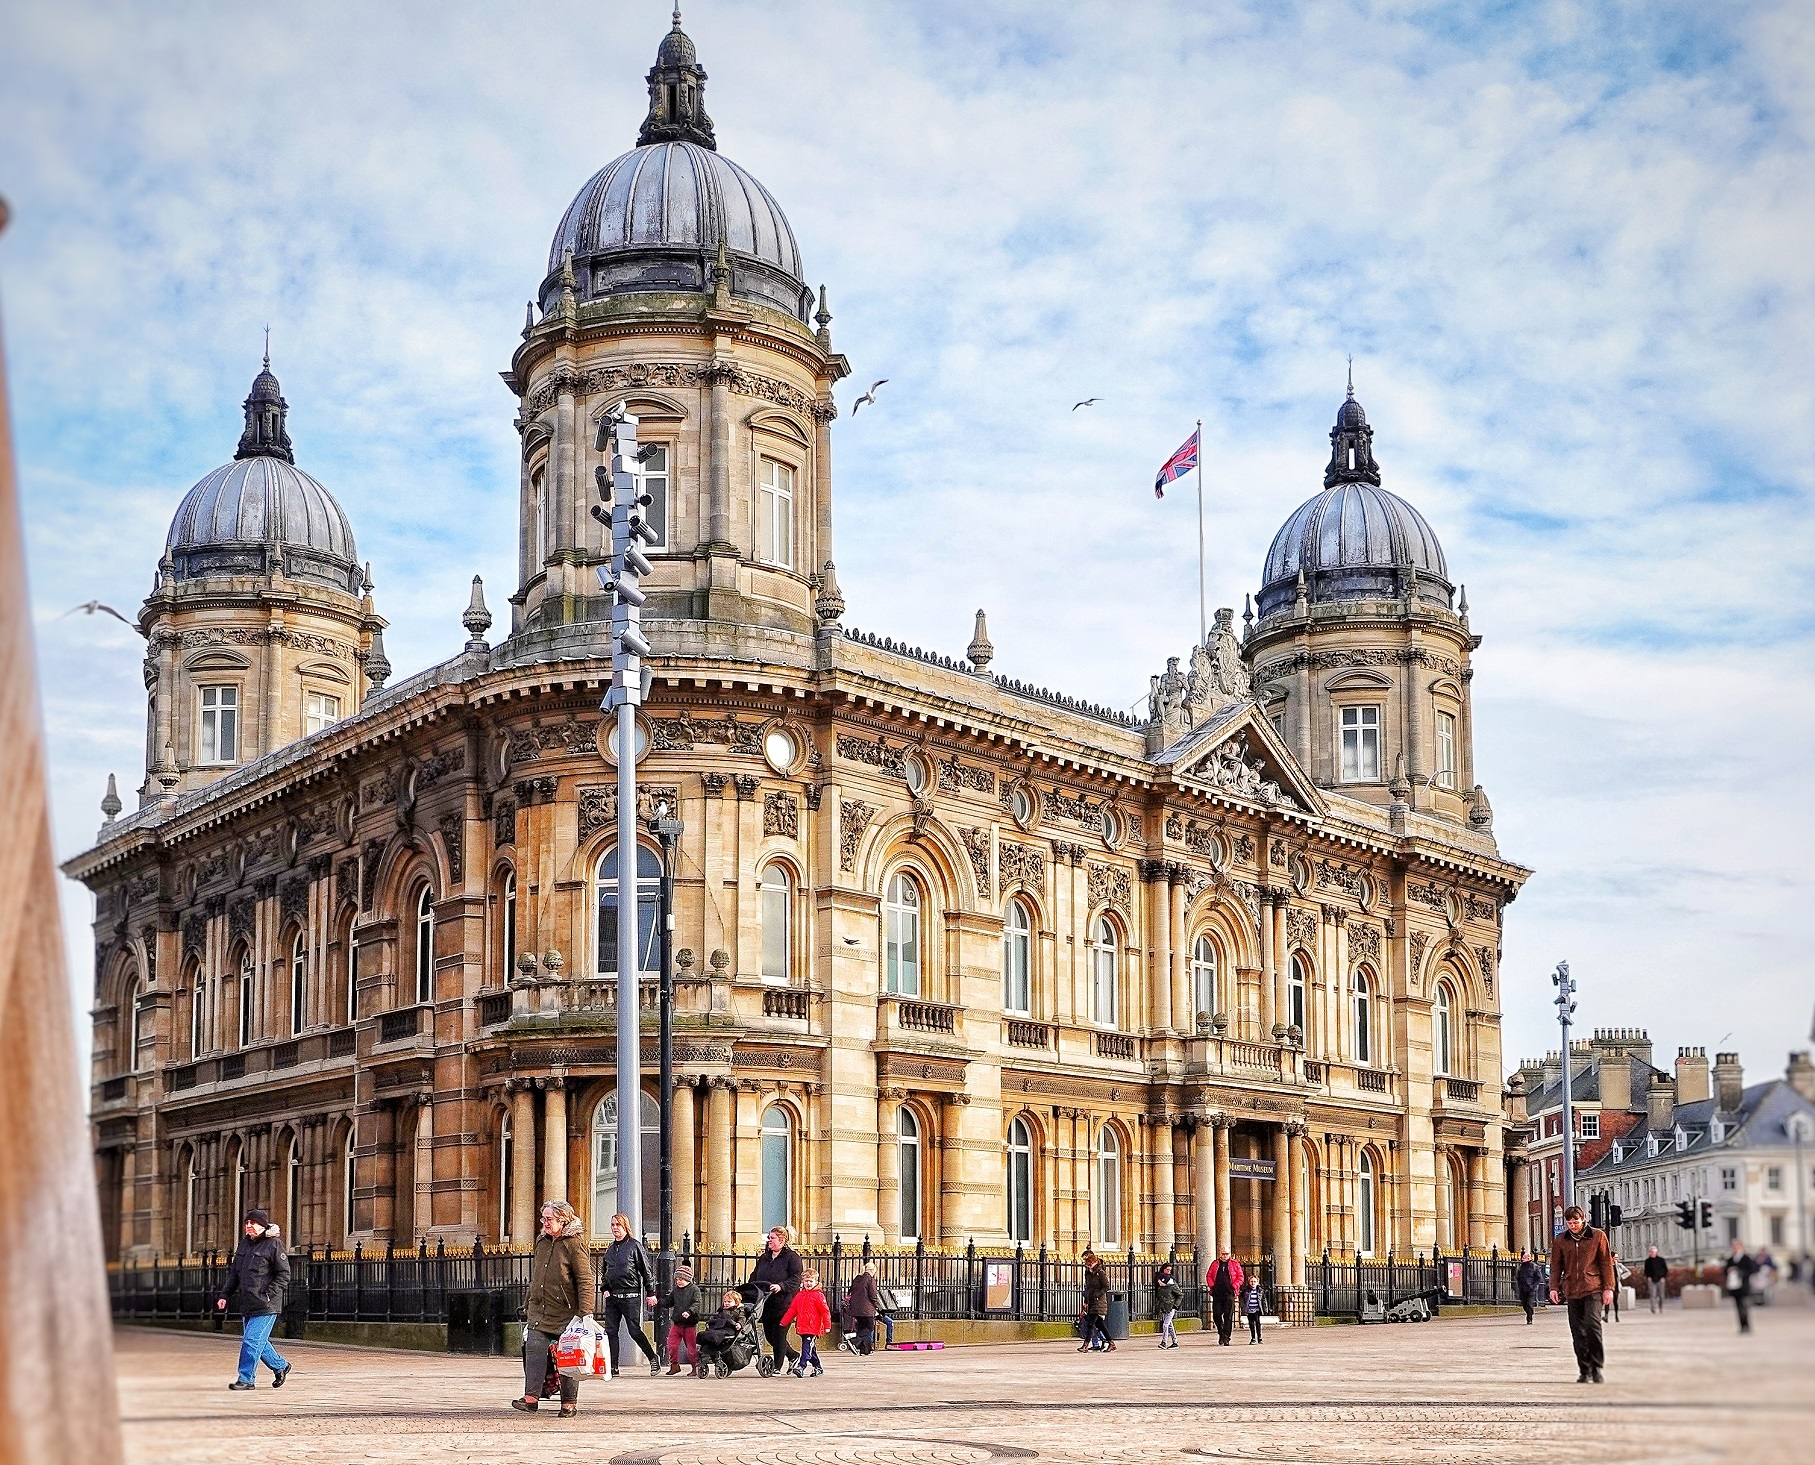 Behind the scenes at Hull Maritime Museum